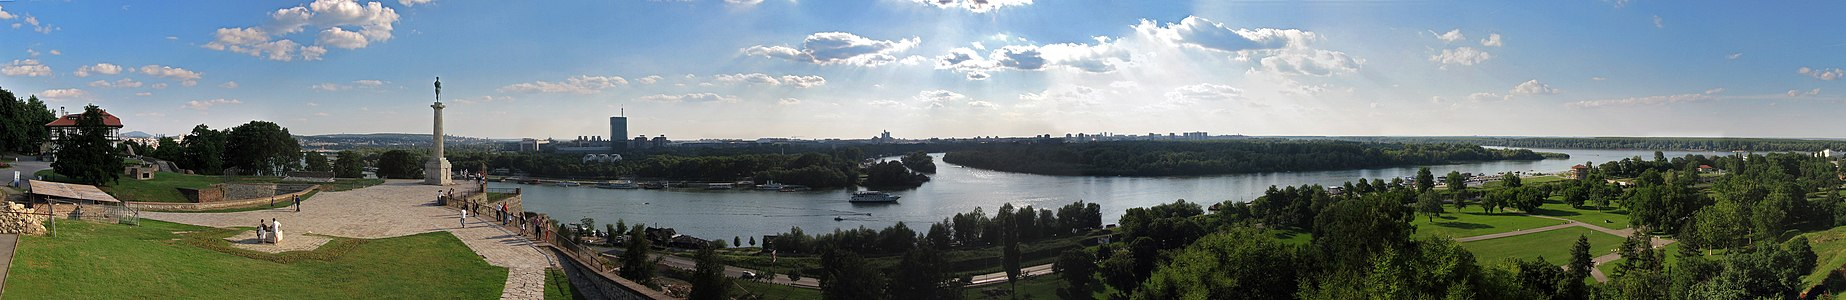 he confluence of the Sava into the Danube at Belgrade. Pictured from Kalemegdan.